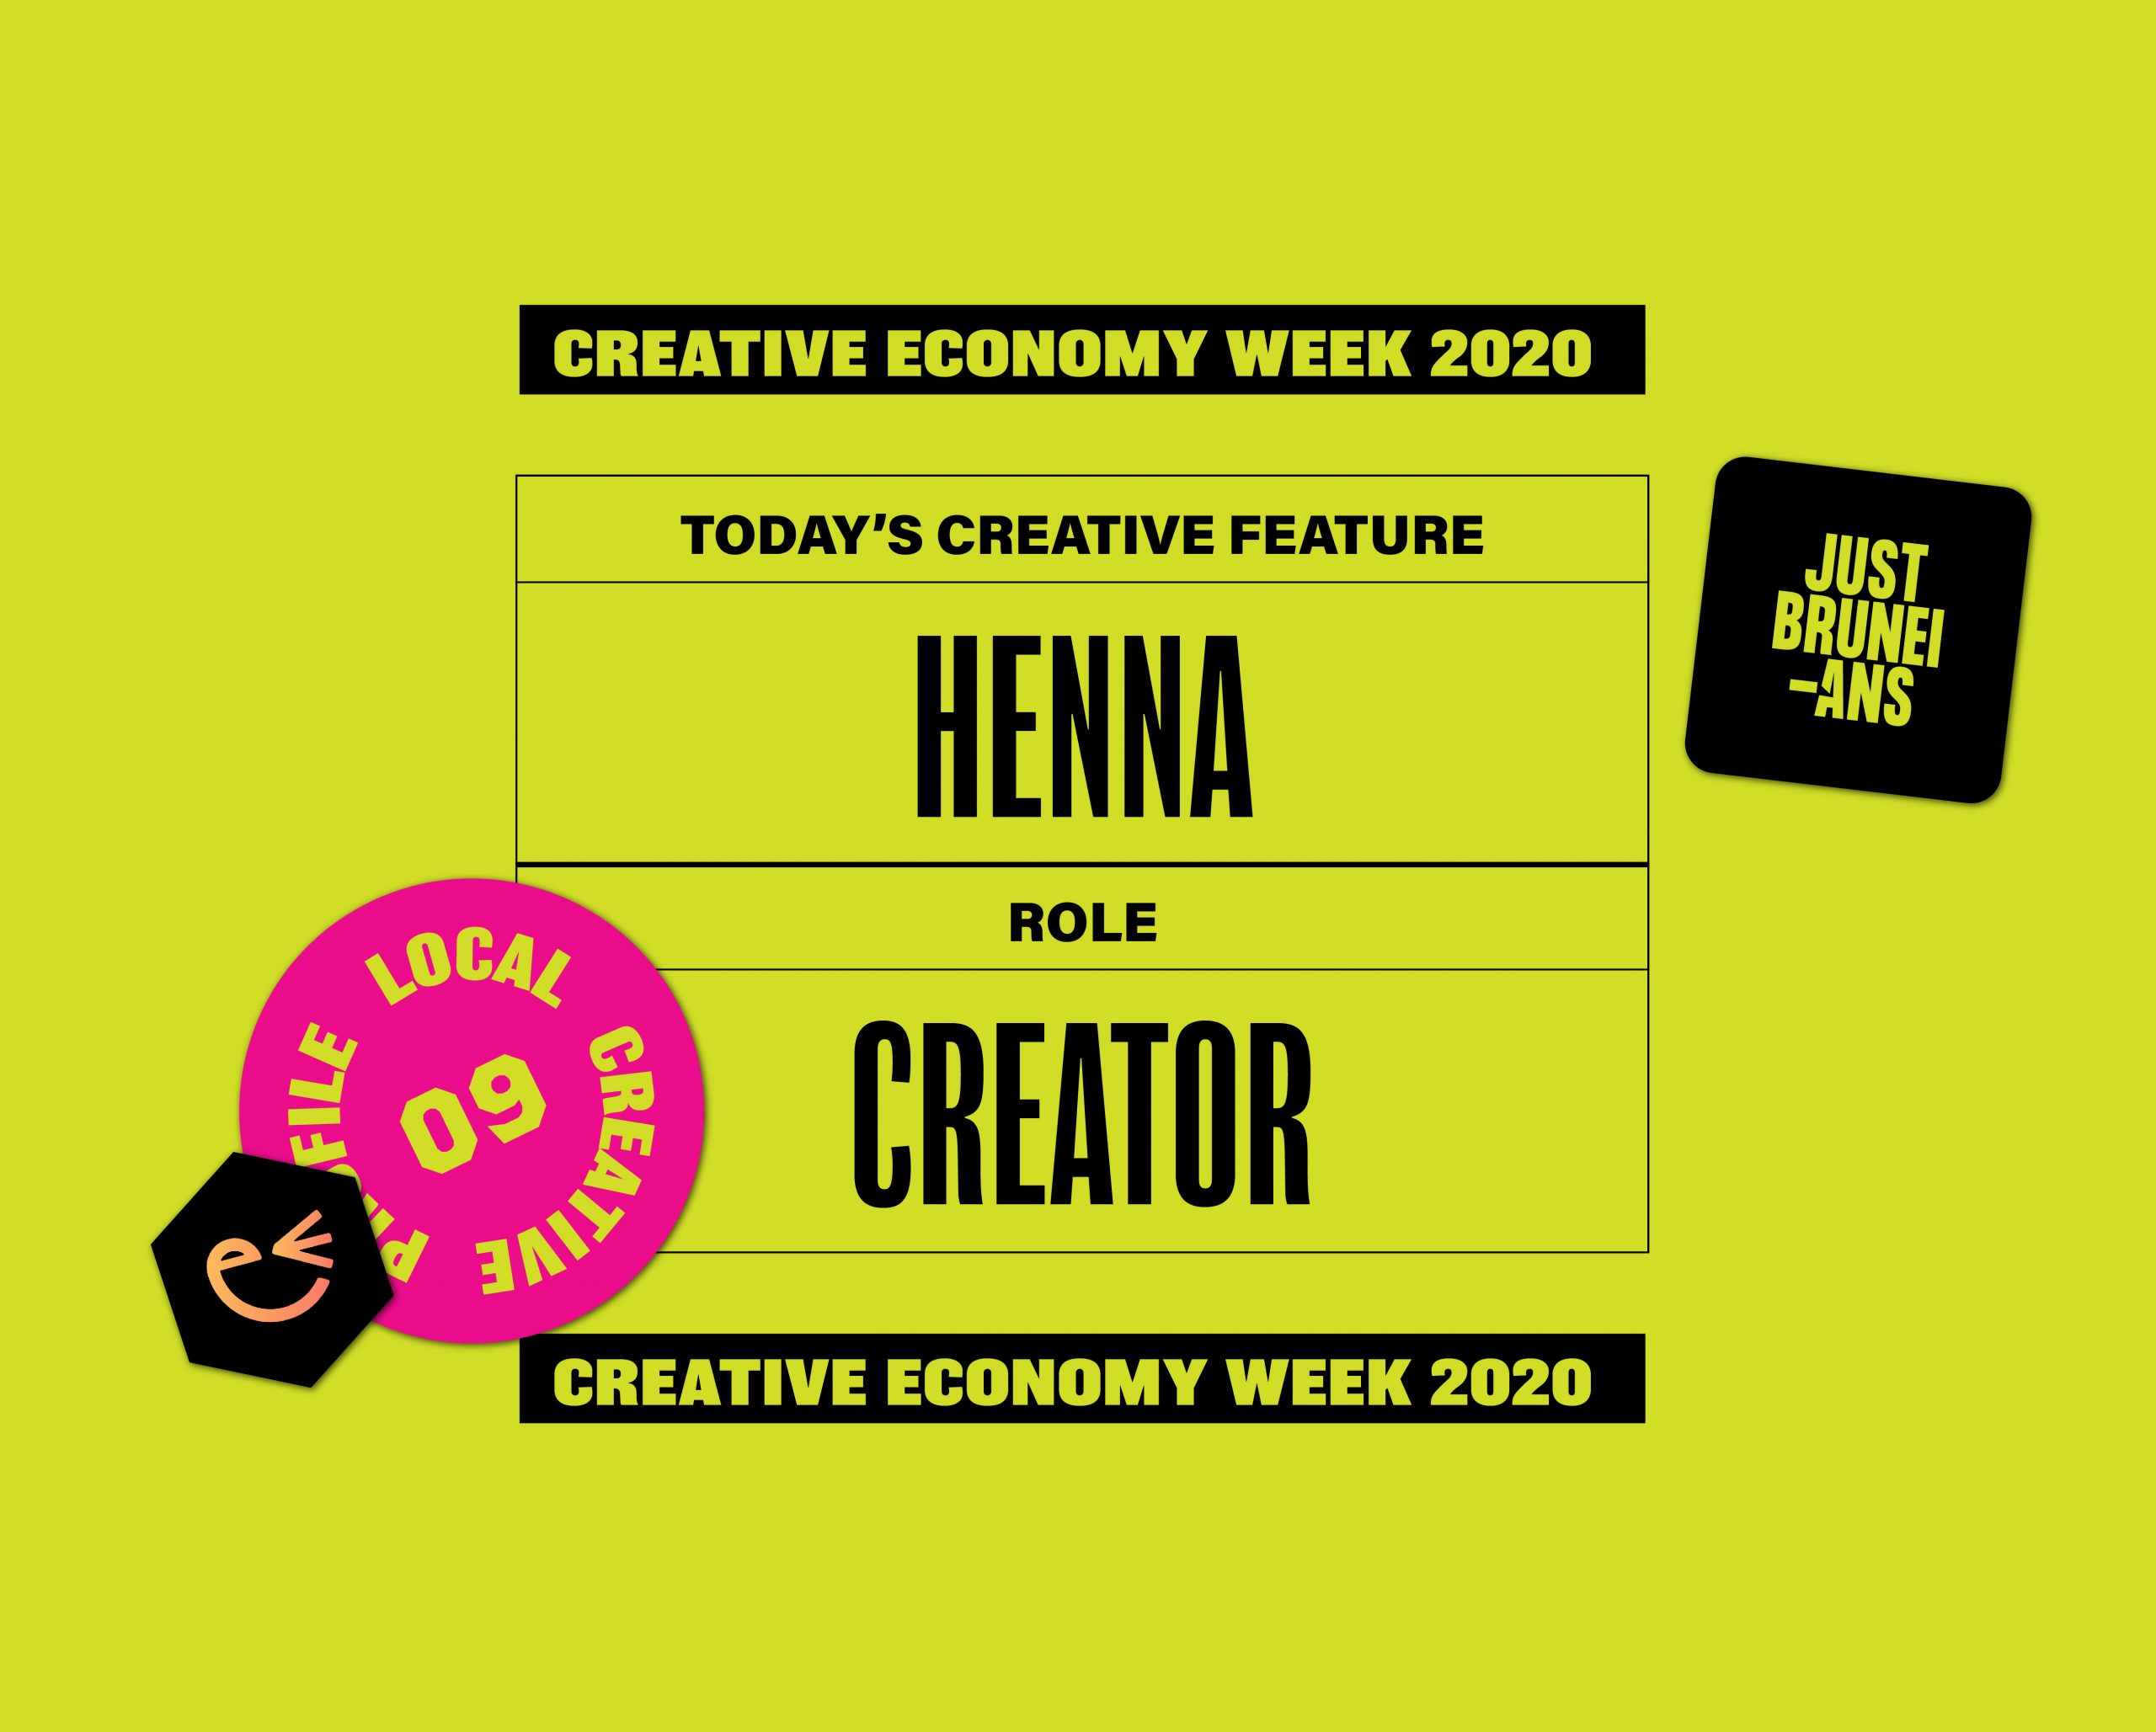 Today's Creative Feature: Henna | Creative Economy Week 2020